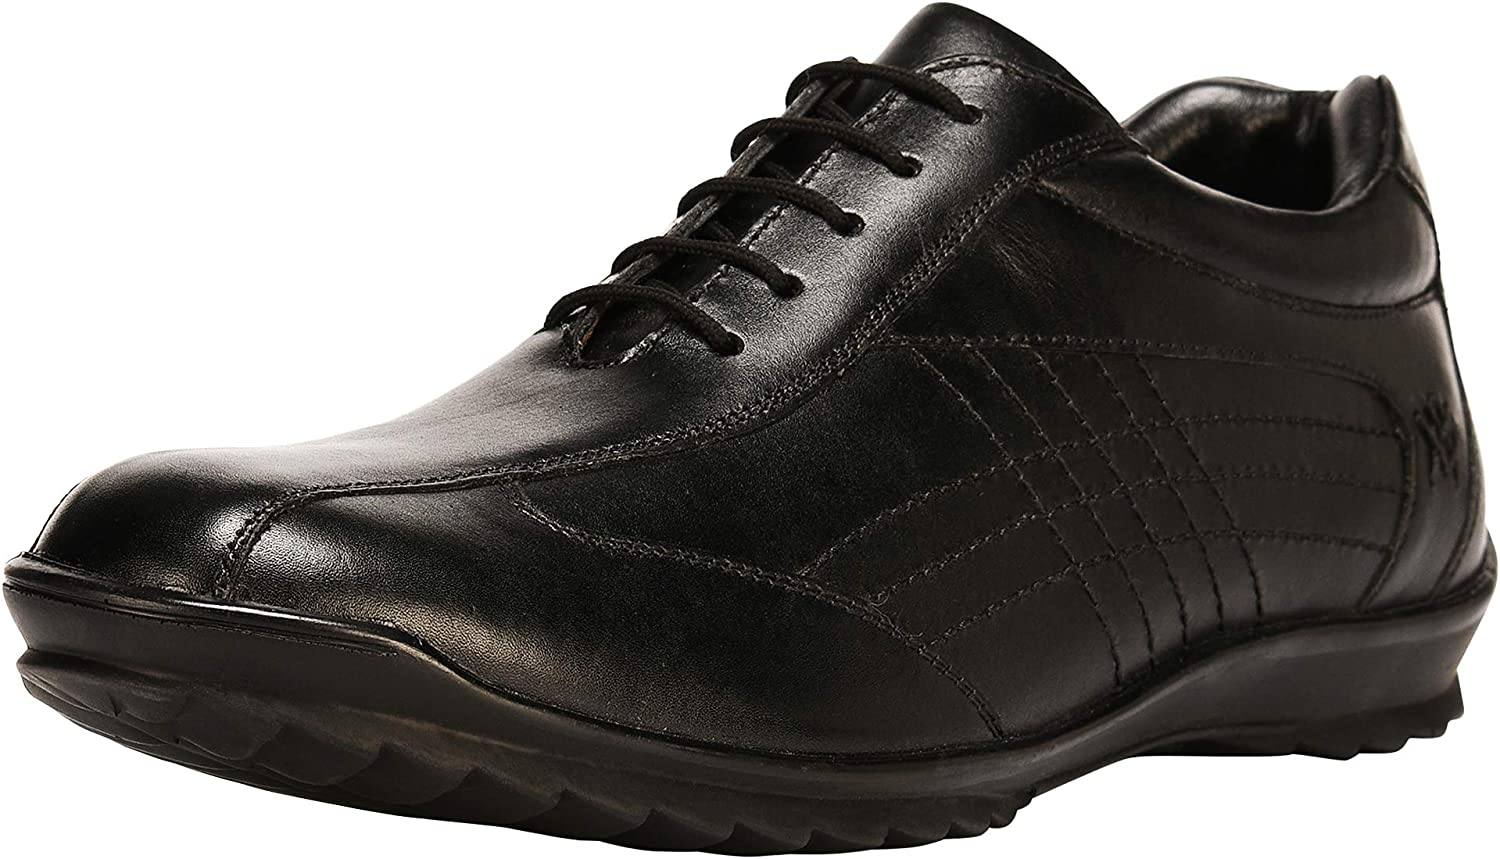 Liberty Handmade Leather Walking Casual shoes